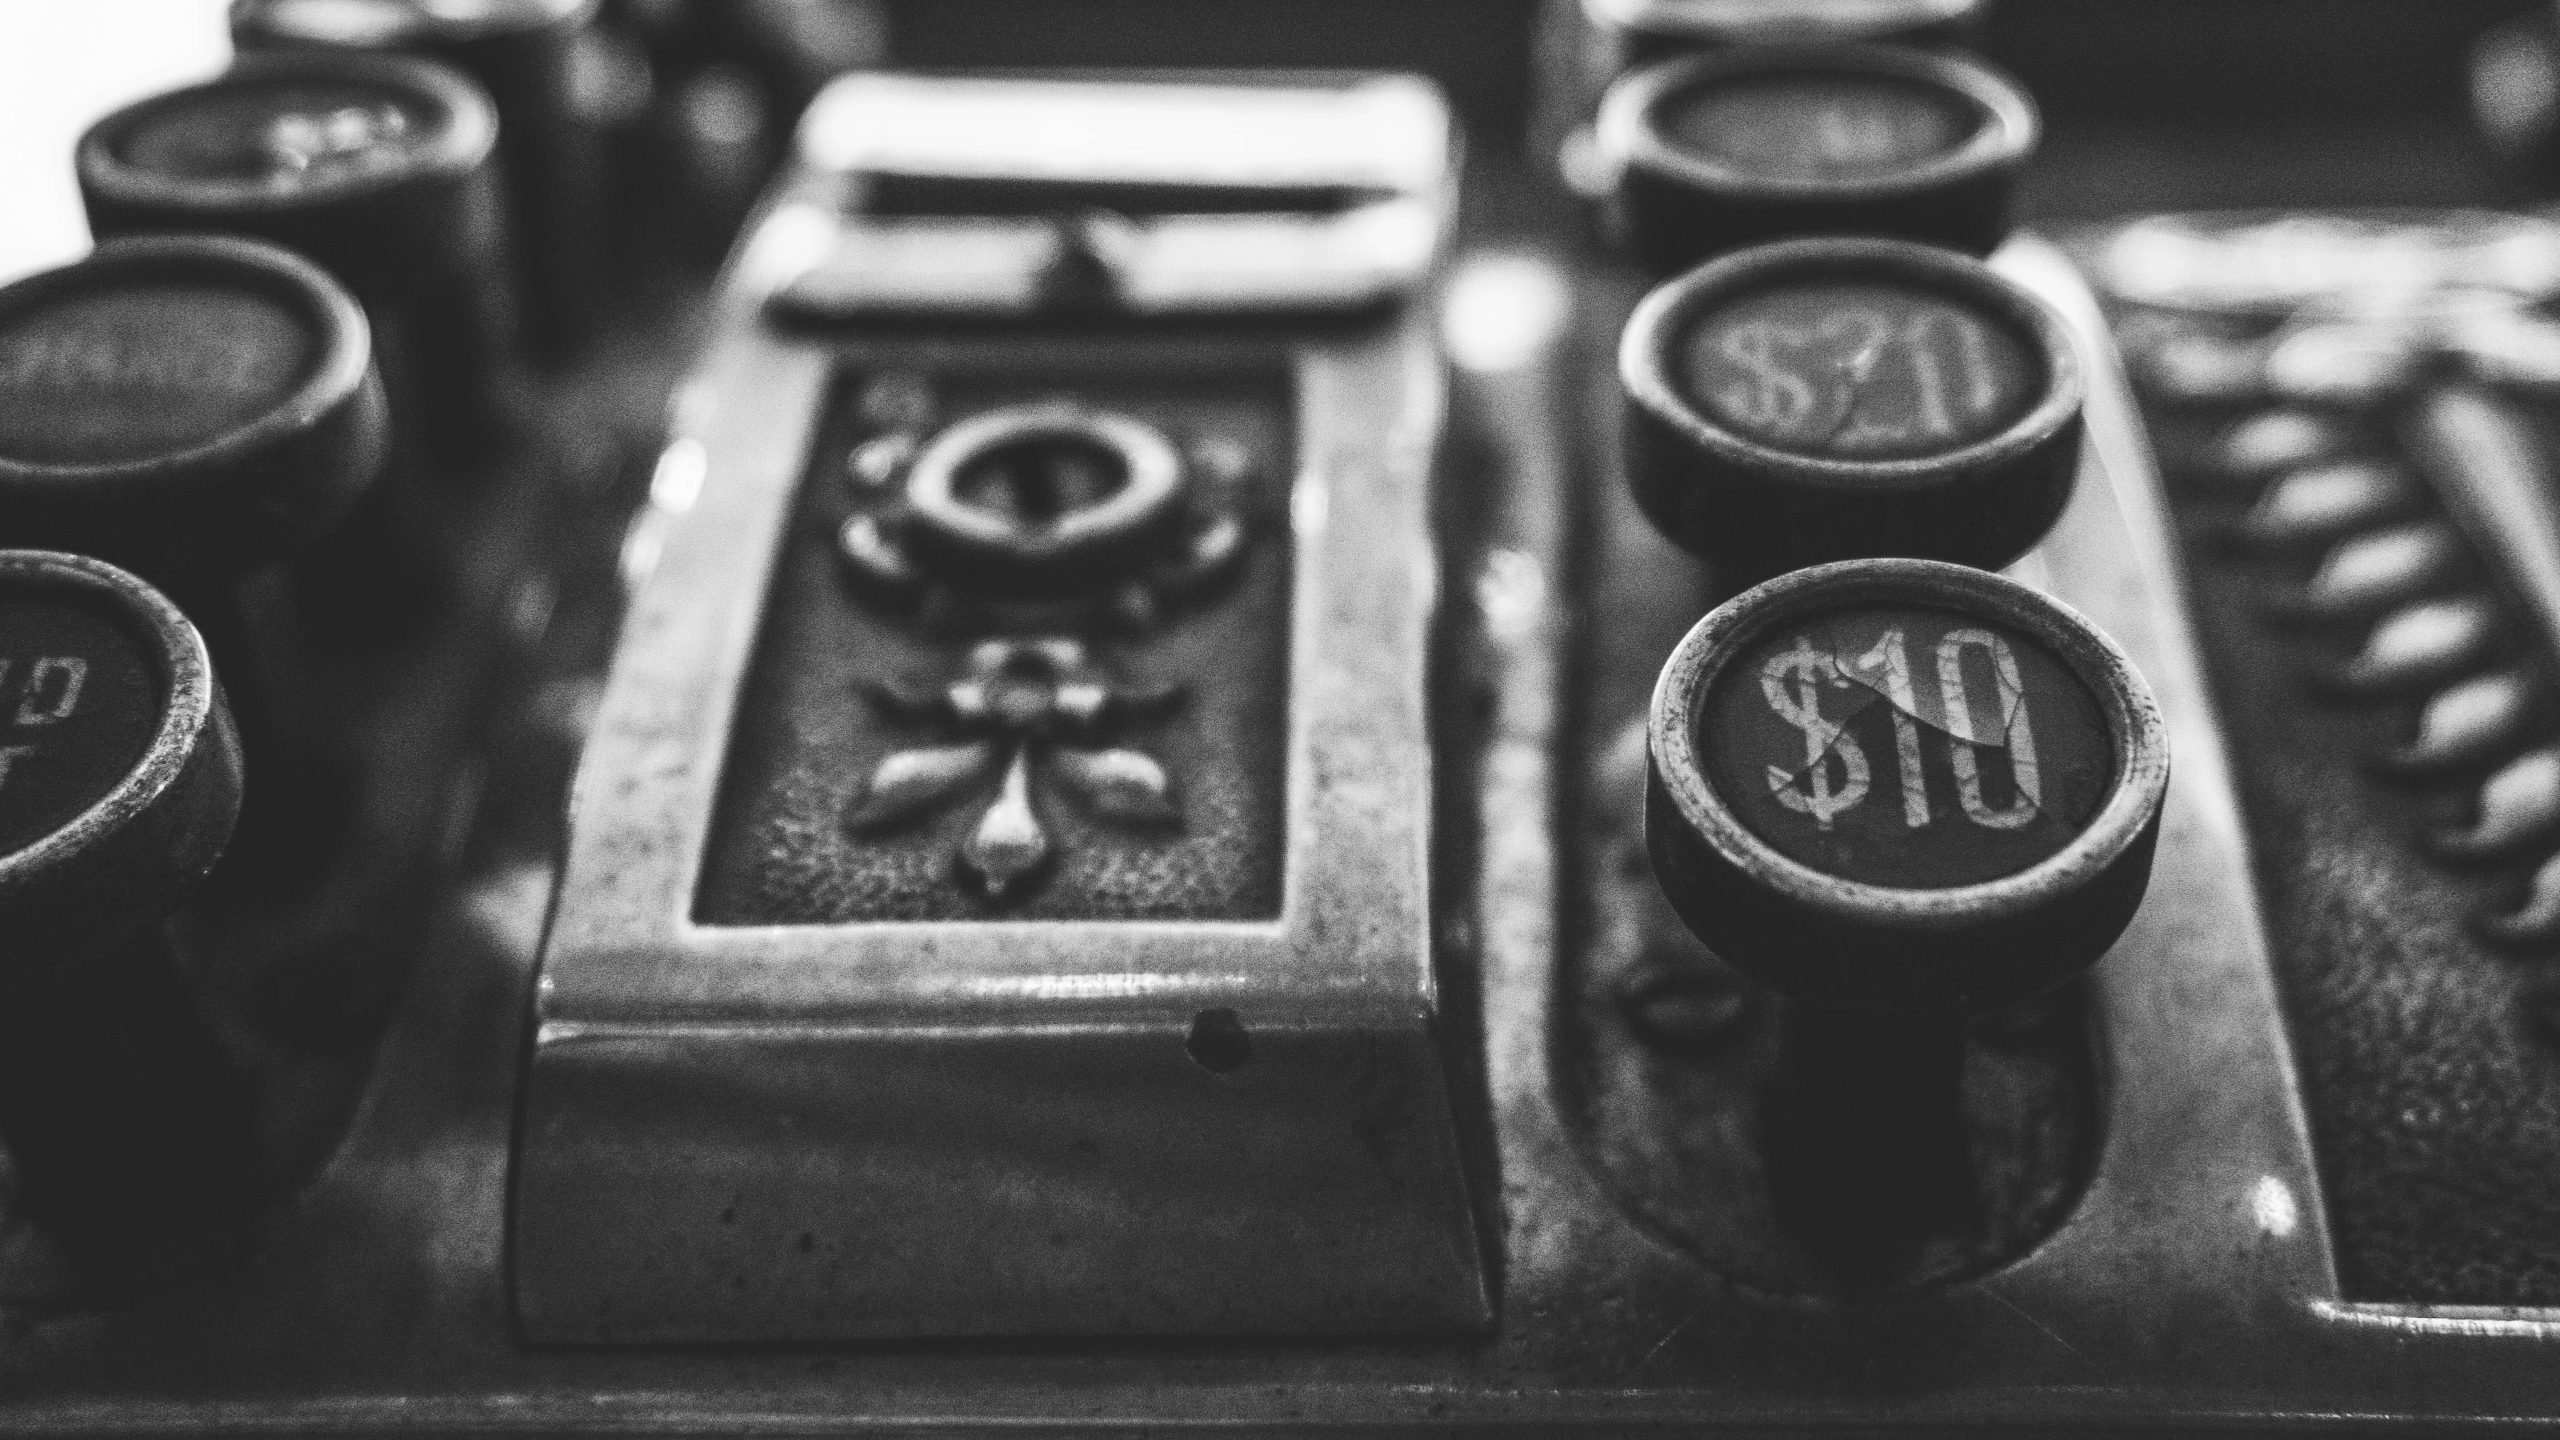 Image of an old fashioned cash register